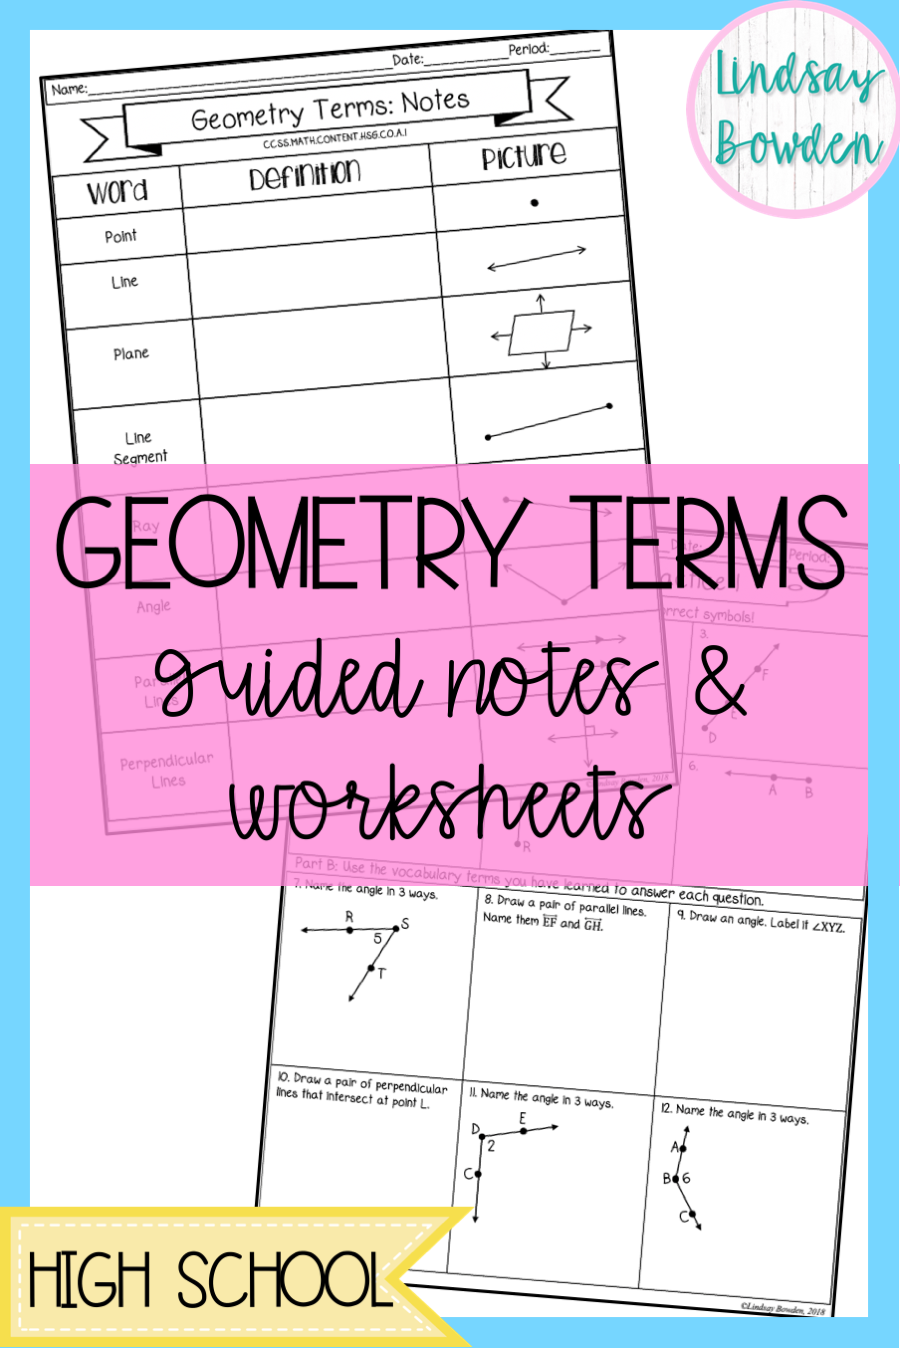 Geometry Vocabulary Lesson With Guided Notes And Worksheets This Lesson Covers The Basic Geometry Terms Great Guided Notes Geometry Answers Geometry Lessons [ 1350 x 900 Pixel ]